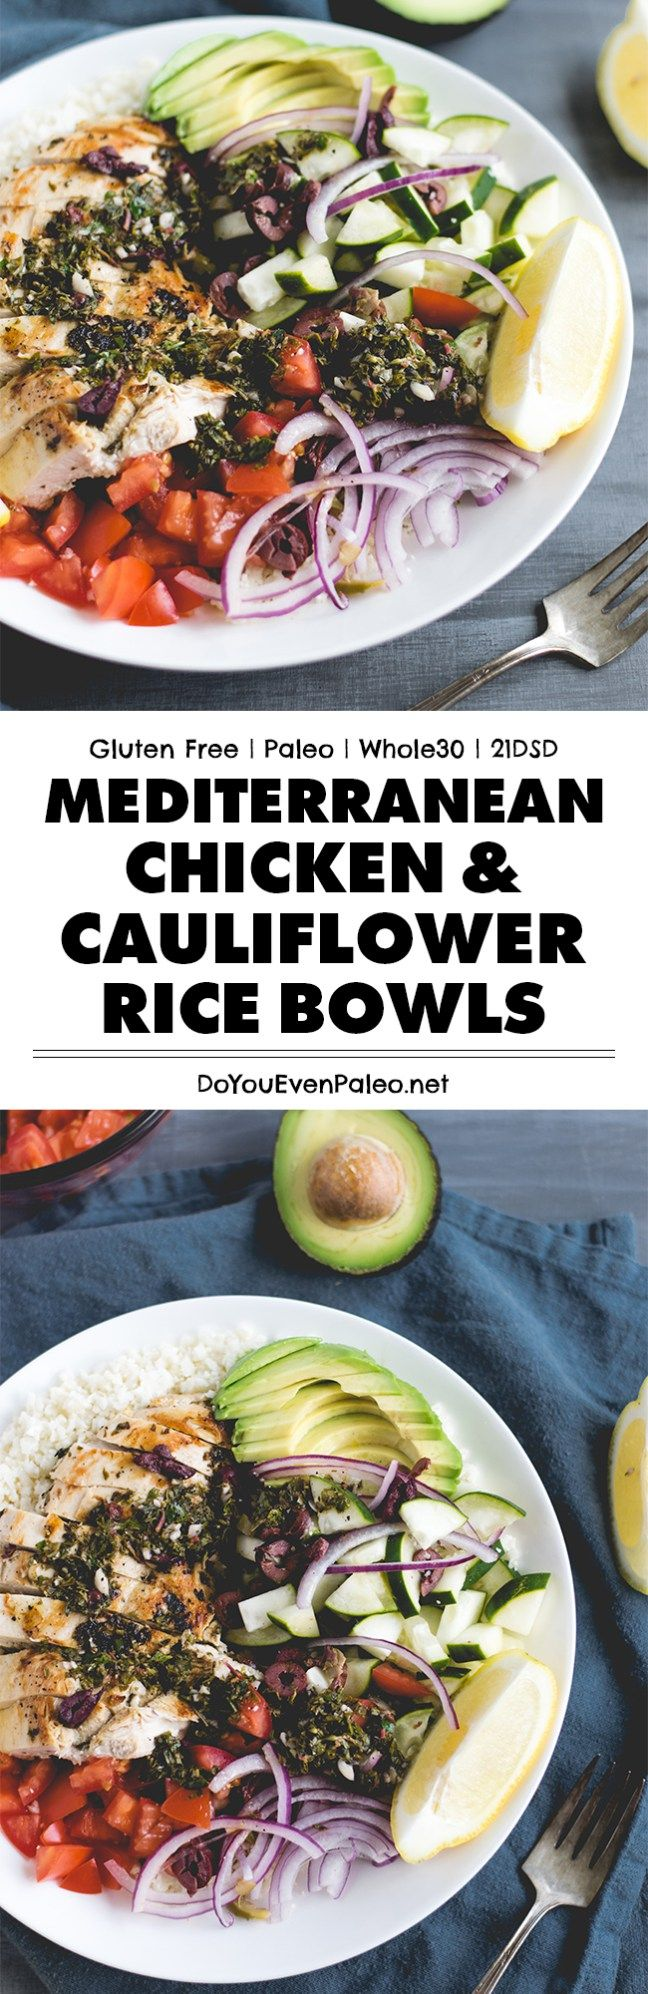 Packed with veggies and refreshing flavor, these Mediterranean Chicken & Cauliflower Rice Bowls make a refreshing, nourishing meal! Paleo, Whole30, and 21DSD | DoYouEvenPaleo.net